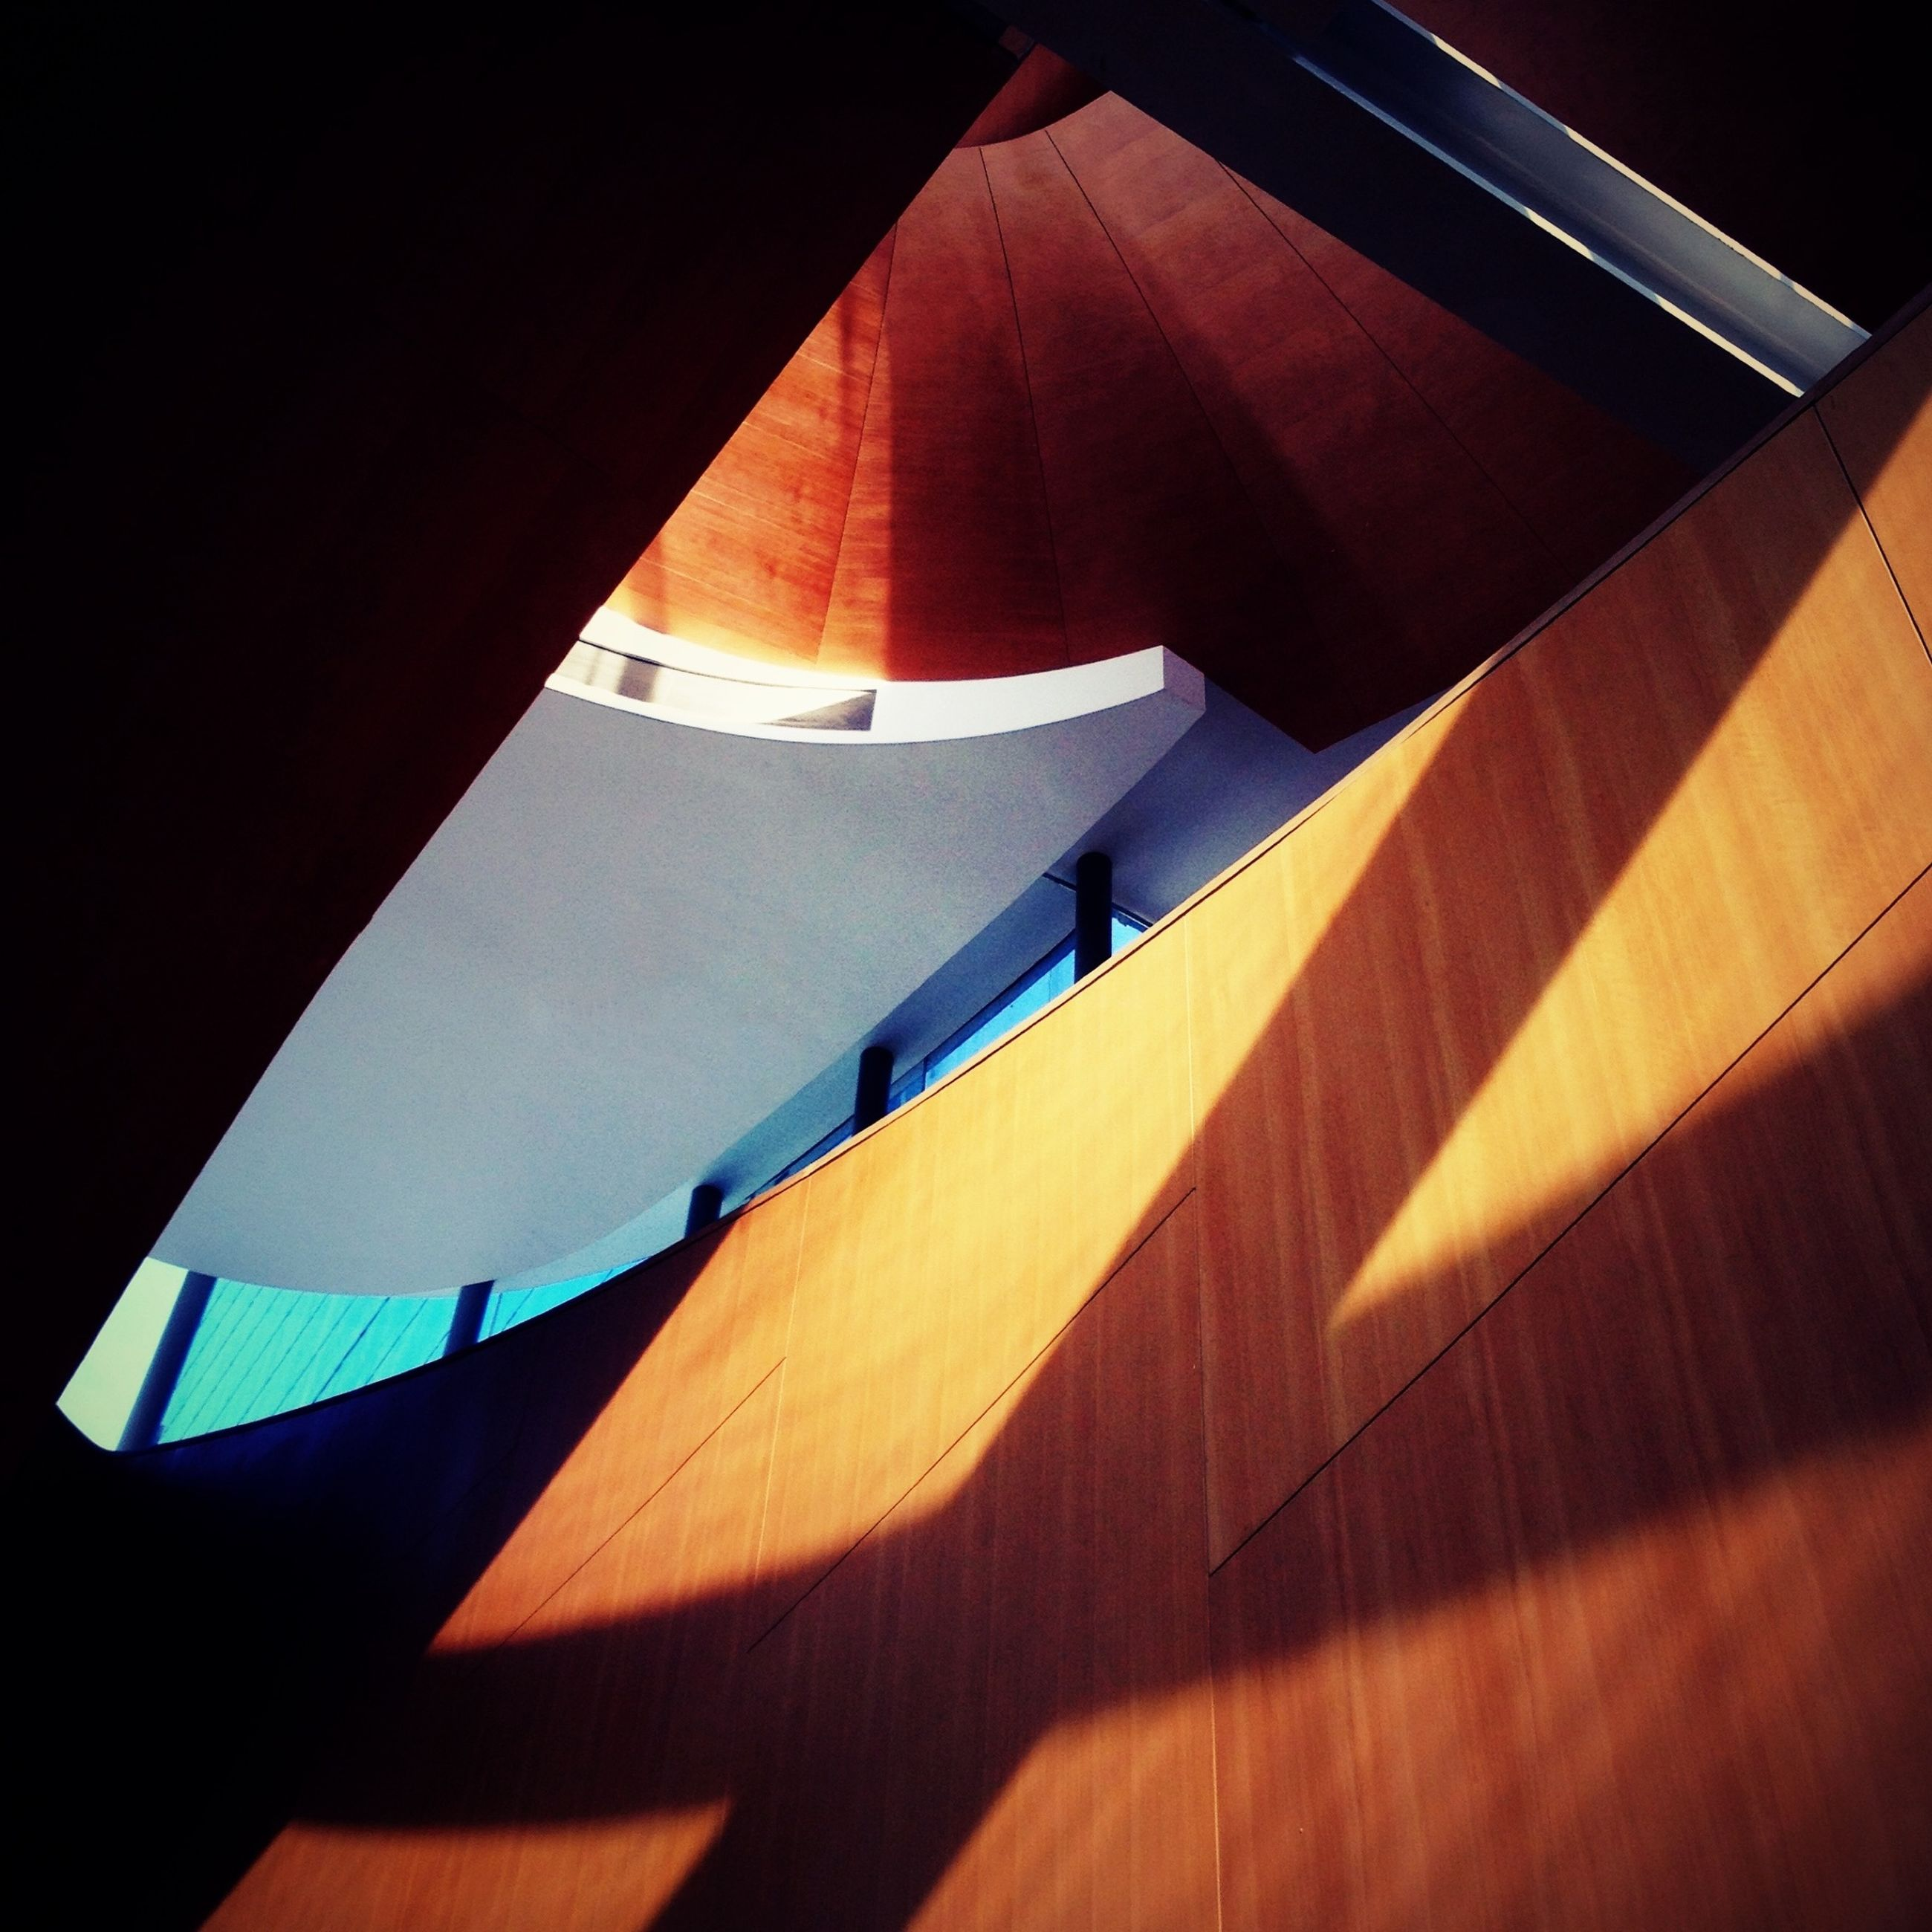 indoors, shadow, high angle view, sunlight, low angle view, table, no people, wood - material, tilt, built structure, absence, architecture, reflection, empty, day, hanging, still life, lighting equipment, modern, auto post production filter